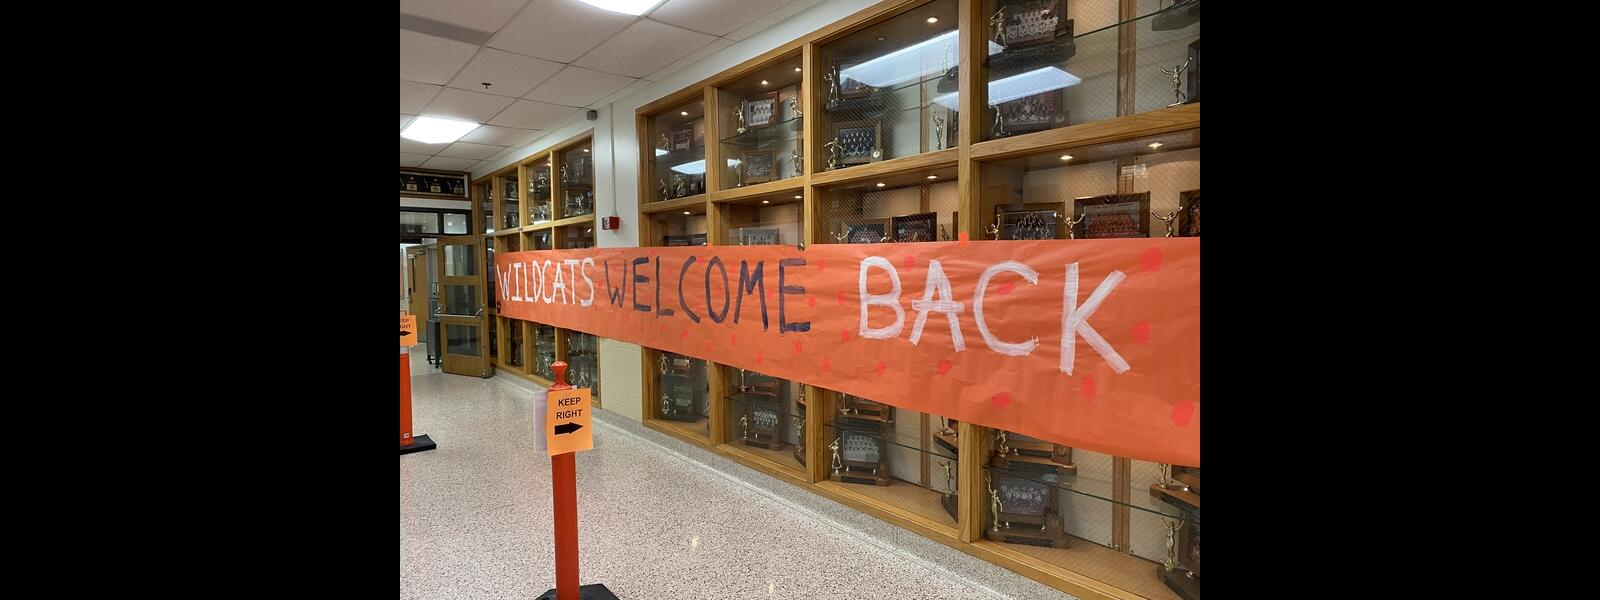 Wildcats Welcome Back sign in LHS main hallway (with signs demonstrating traffic flow for social distancing)